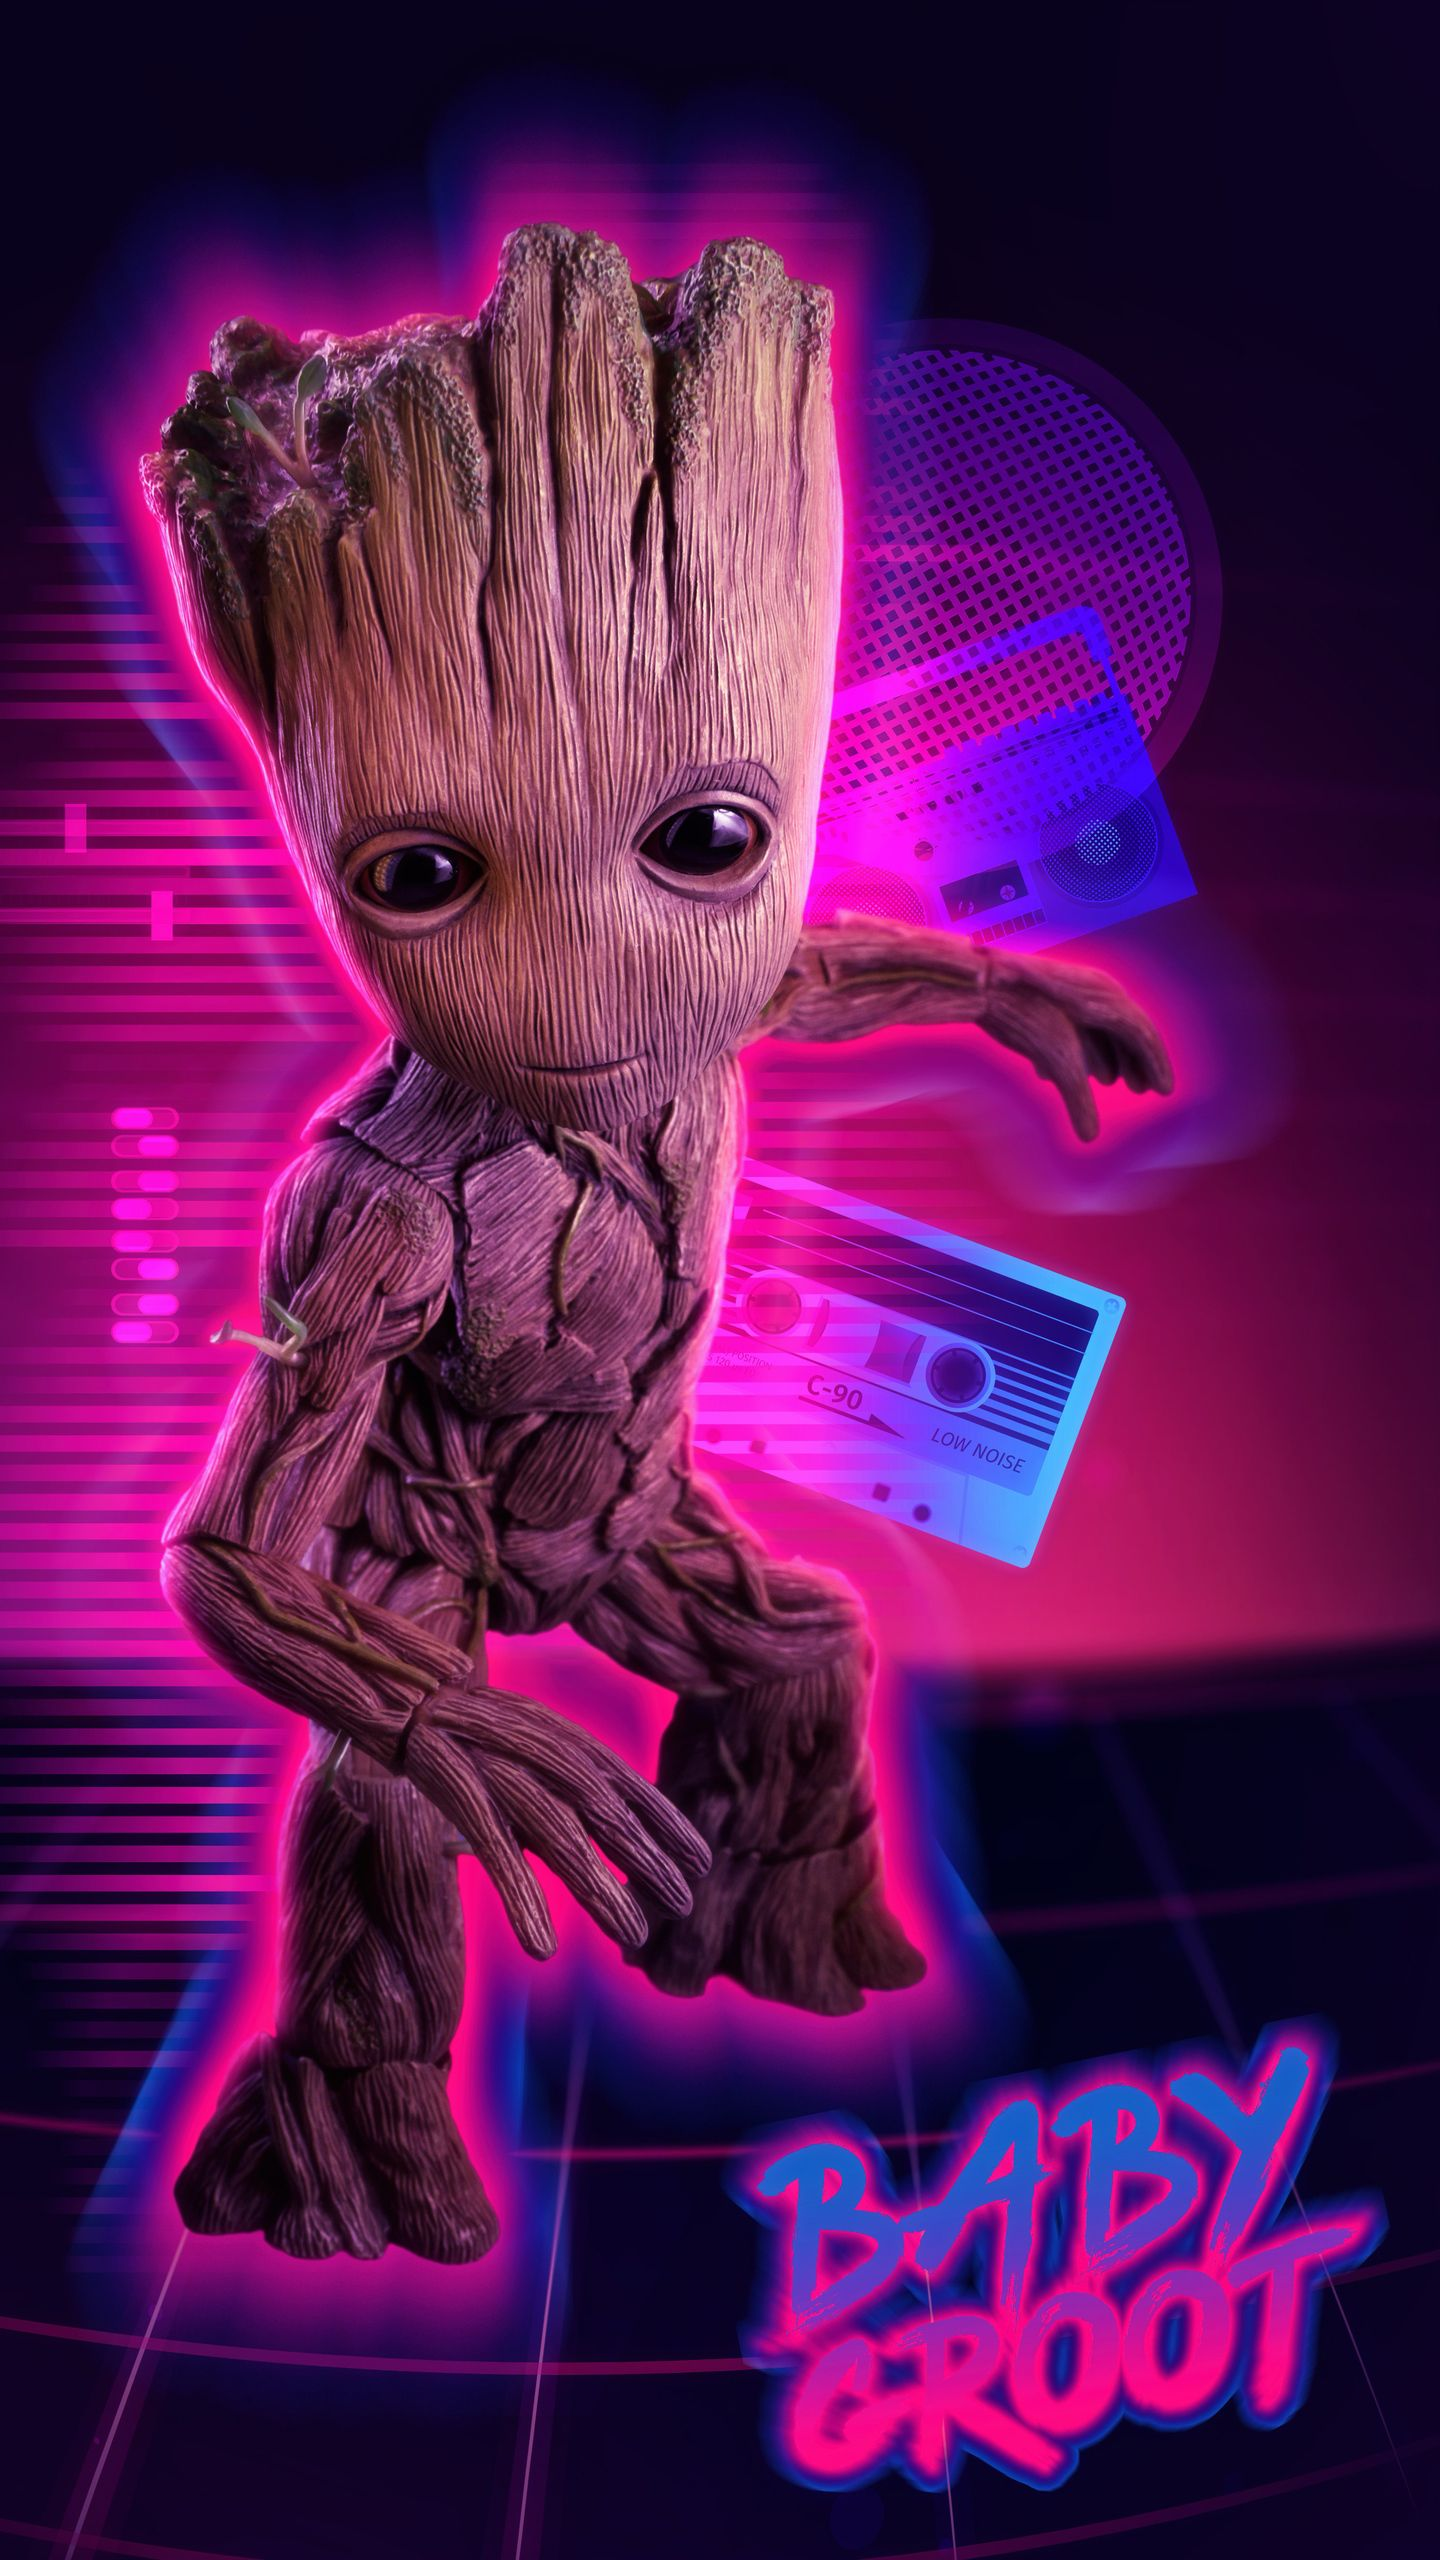 Which Guardians Of The Galaxy Character Are You Take The Quiz Gotg Starlord Groot Drax Gamora Ego Marvel Avengers Mcu Groot Marvel Baby Groot Groot